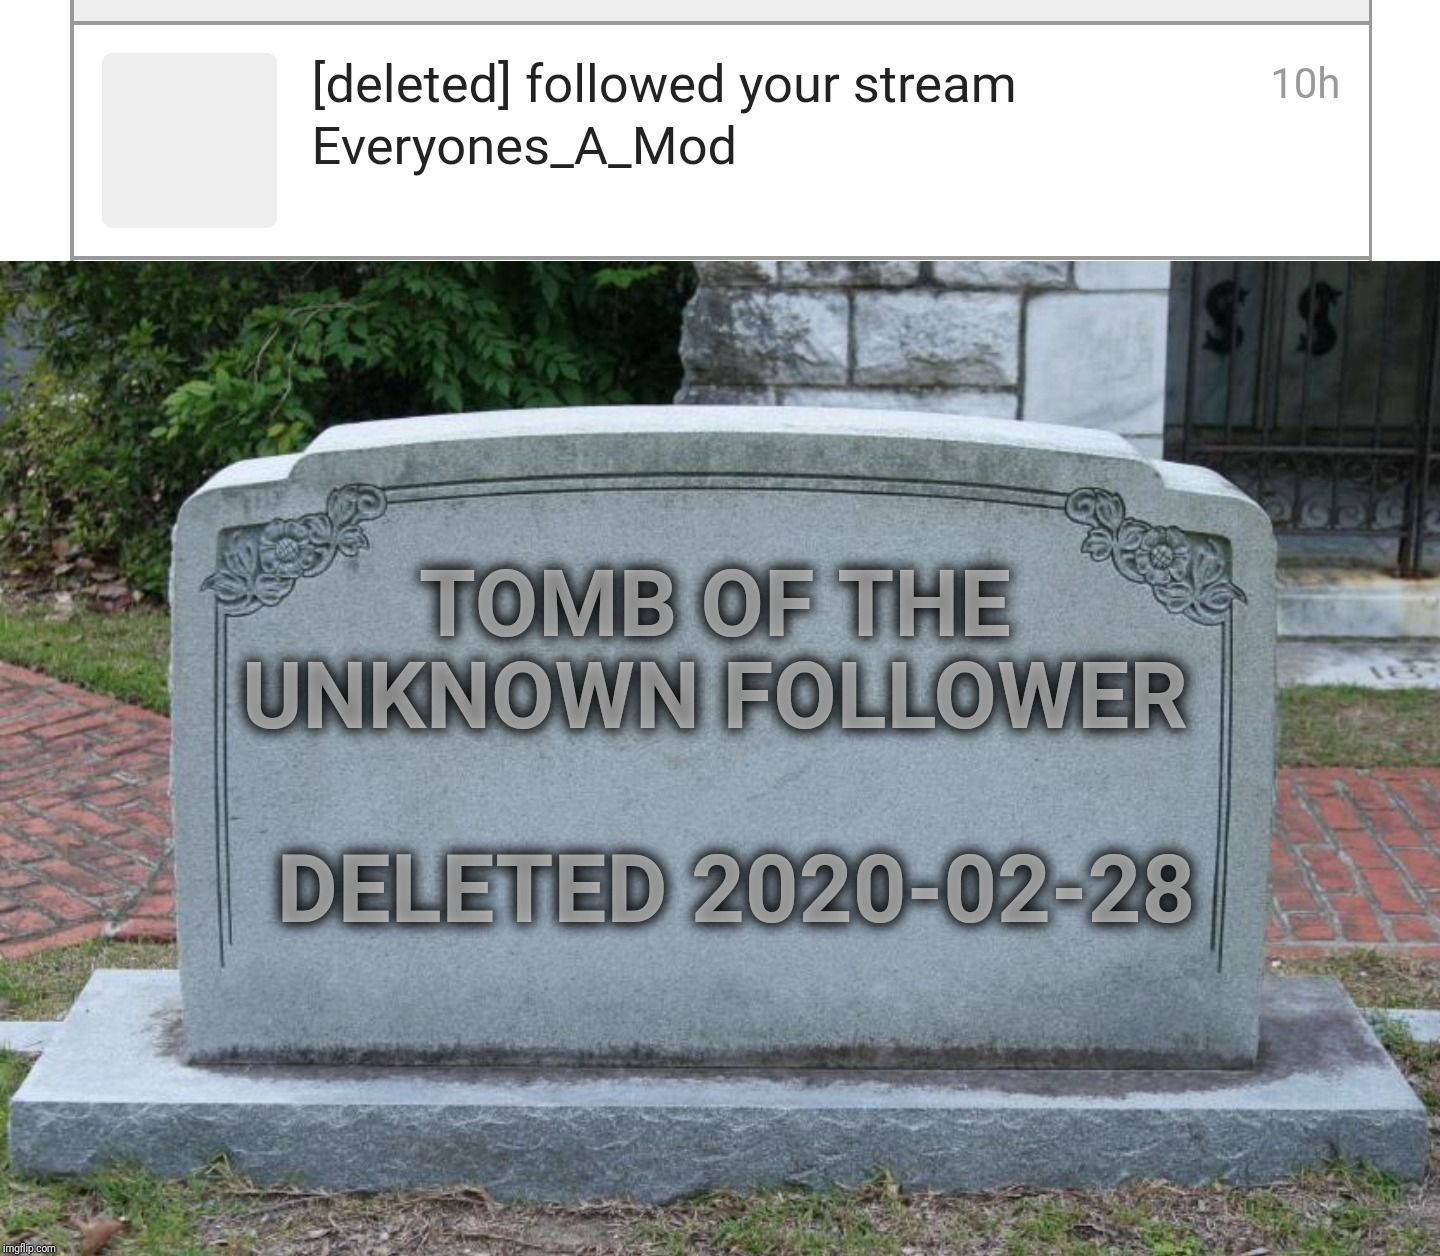 ☠️☠️Tomb of the Unknown Follower☠️☠️ ☠️☠️Press F to pay respects☠️☠️ |  TOMB OF THE UNKNOWN FOLLOWER; DELETED 2020-02-28 | image tagged in gravestone,press f to pay respects,deleted accounts,who was that | made w/ Imgflip meme maker